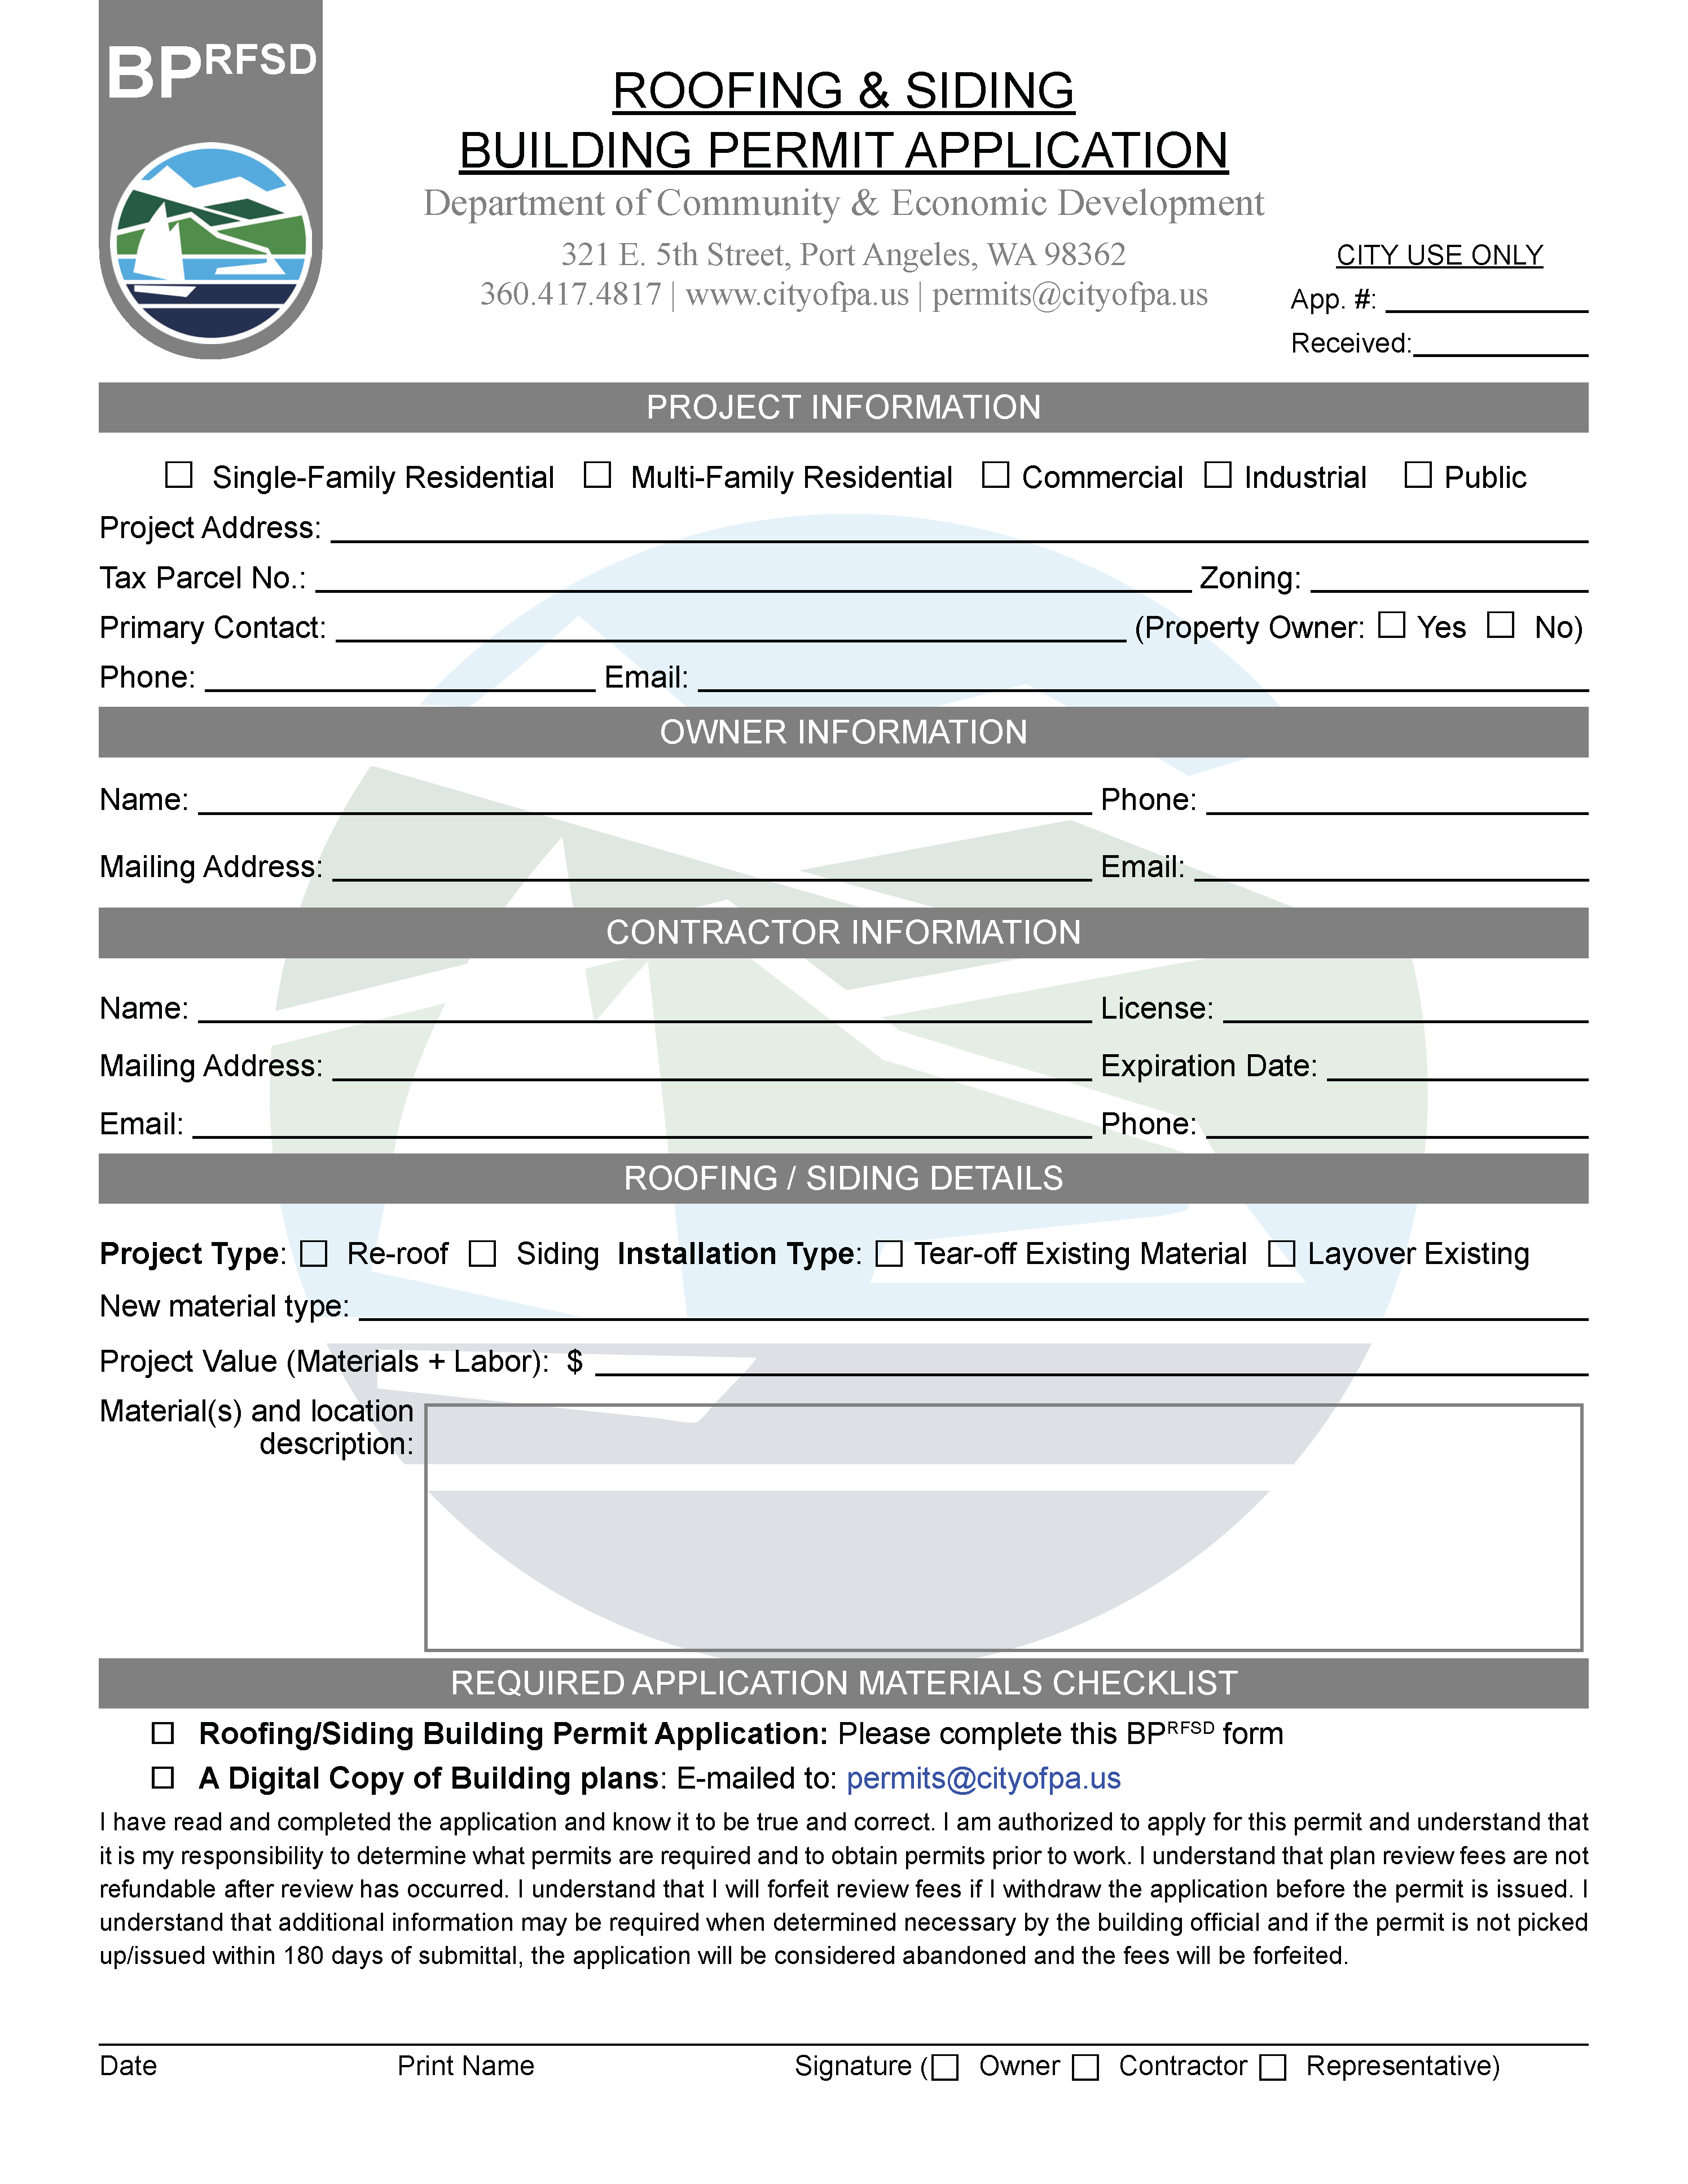 BPrfsd Roofing and Siding Permit Application